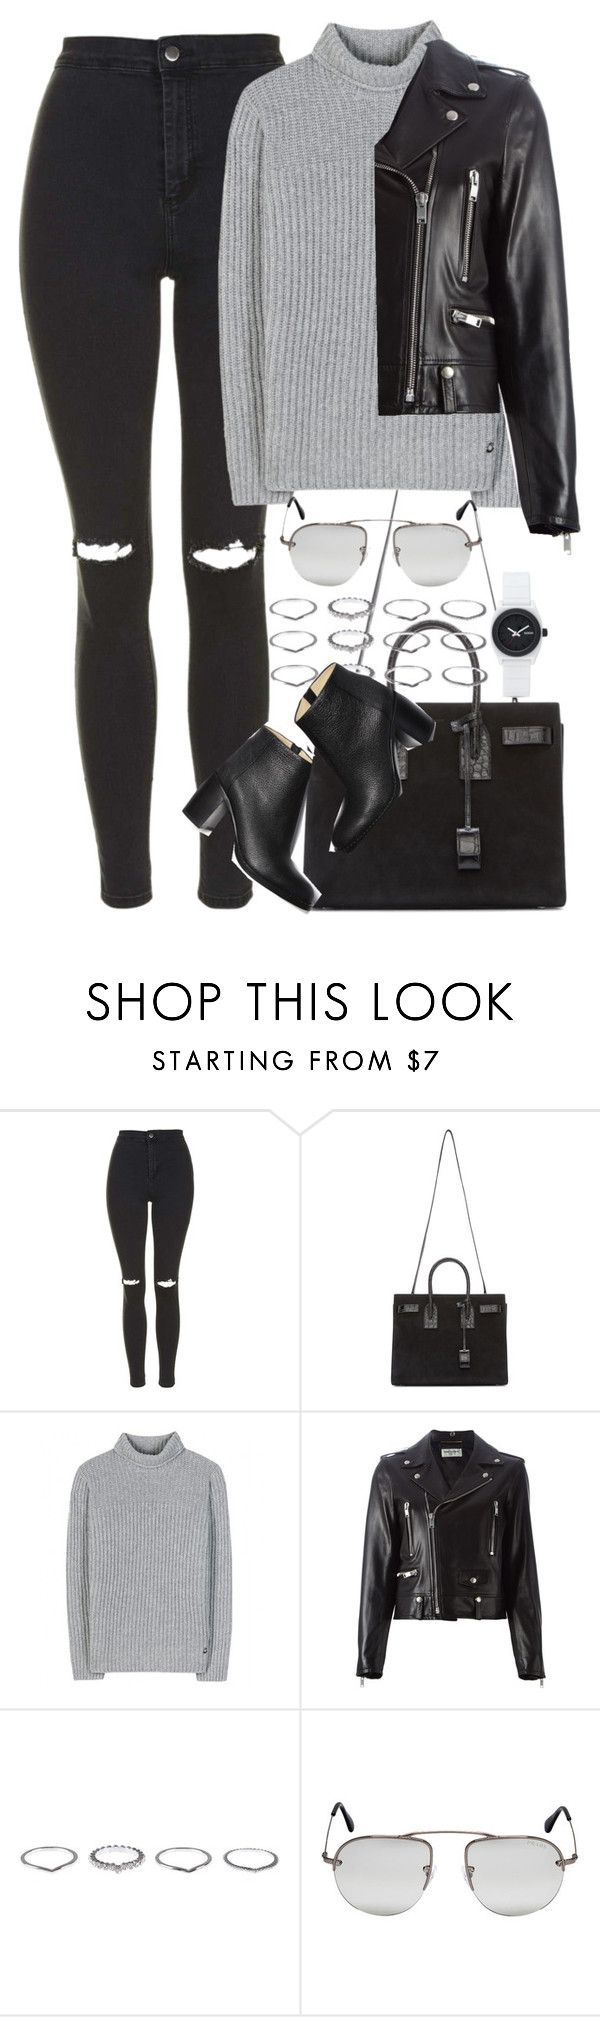 """Untitled #3899"" by amyn99 on Polyvore featuring Topshop, Yves Saint Laurent, Loro Piana, Paul Andrew, Prada and Nixon"